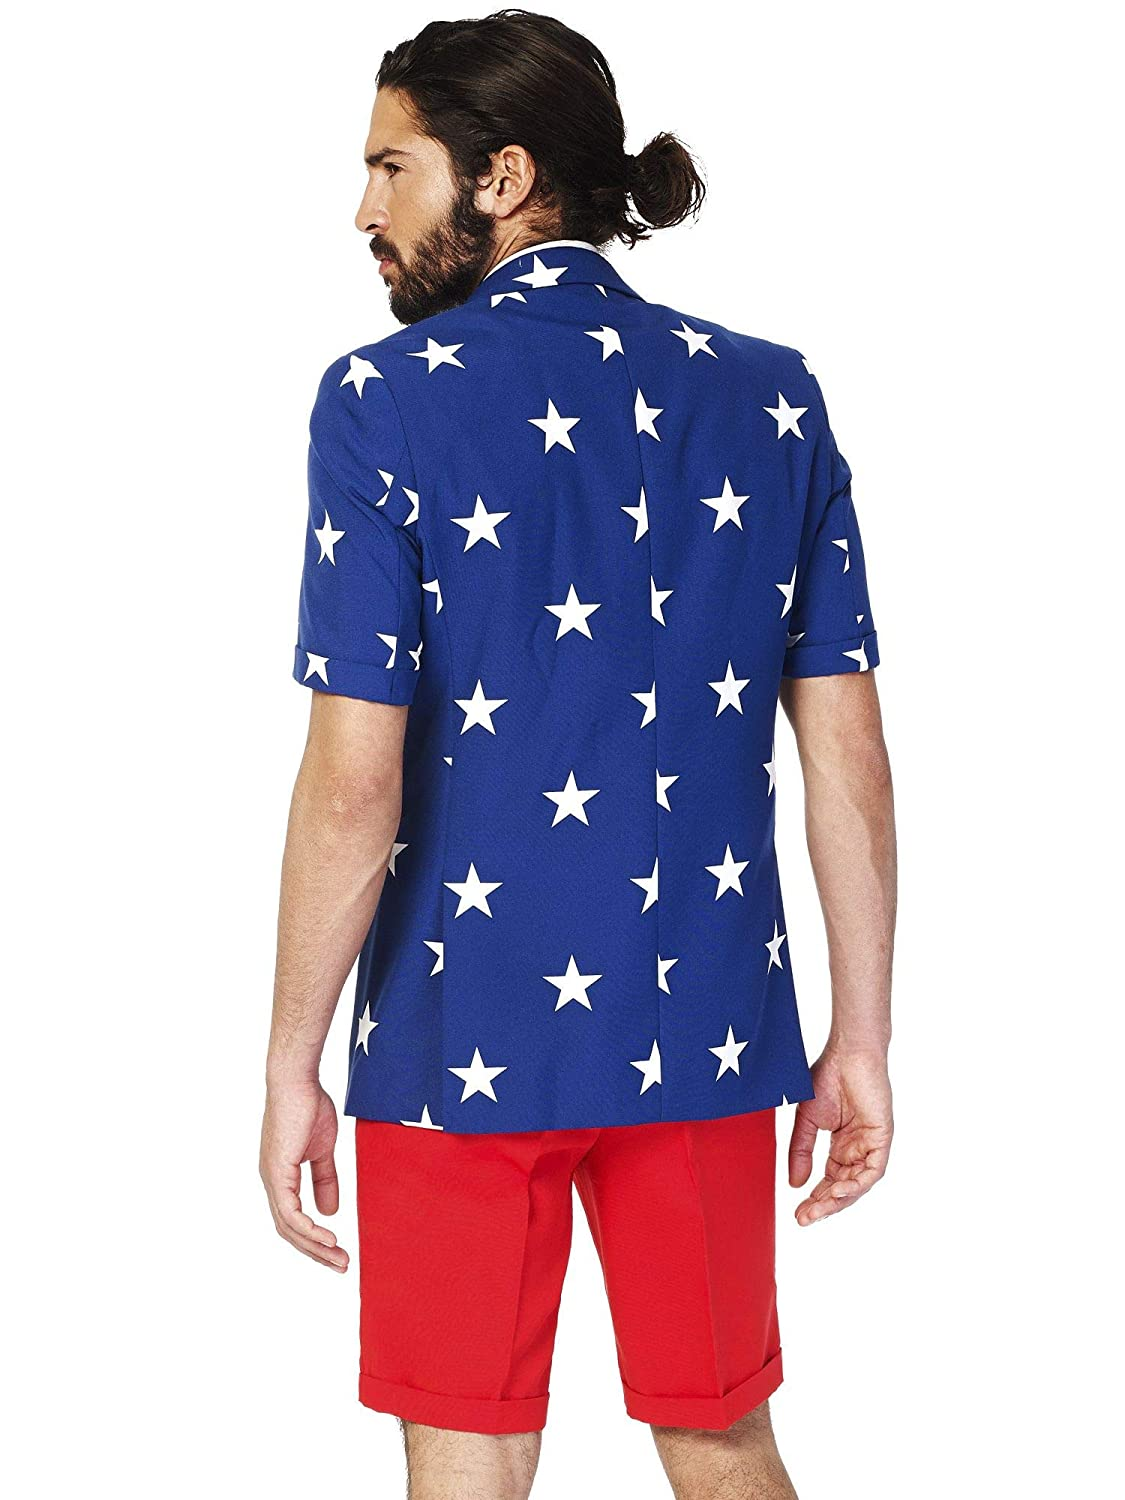 a28052aa35da OppoSuits American Flag Suit for Men - USA Outfit for The 4th of July with  Red White and Blue Jacket